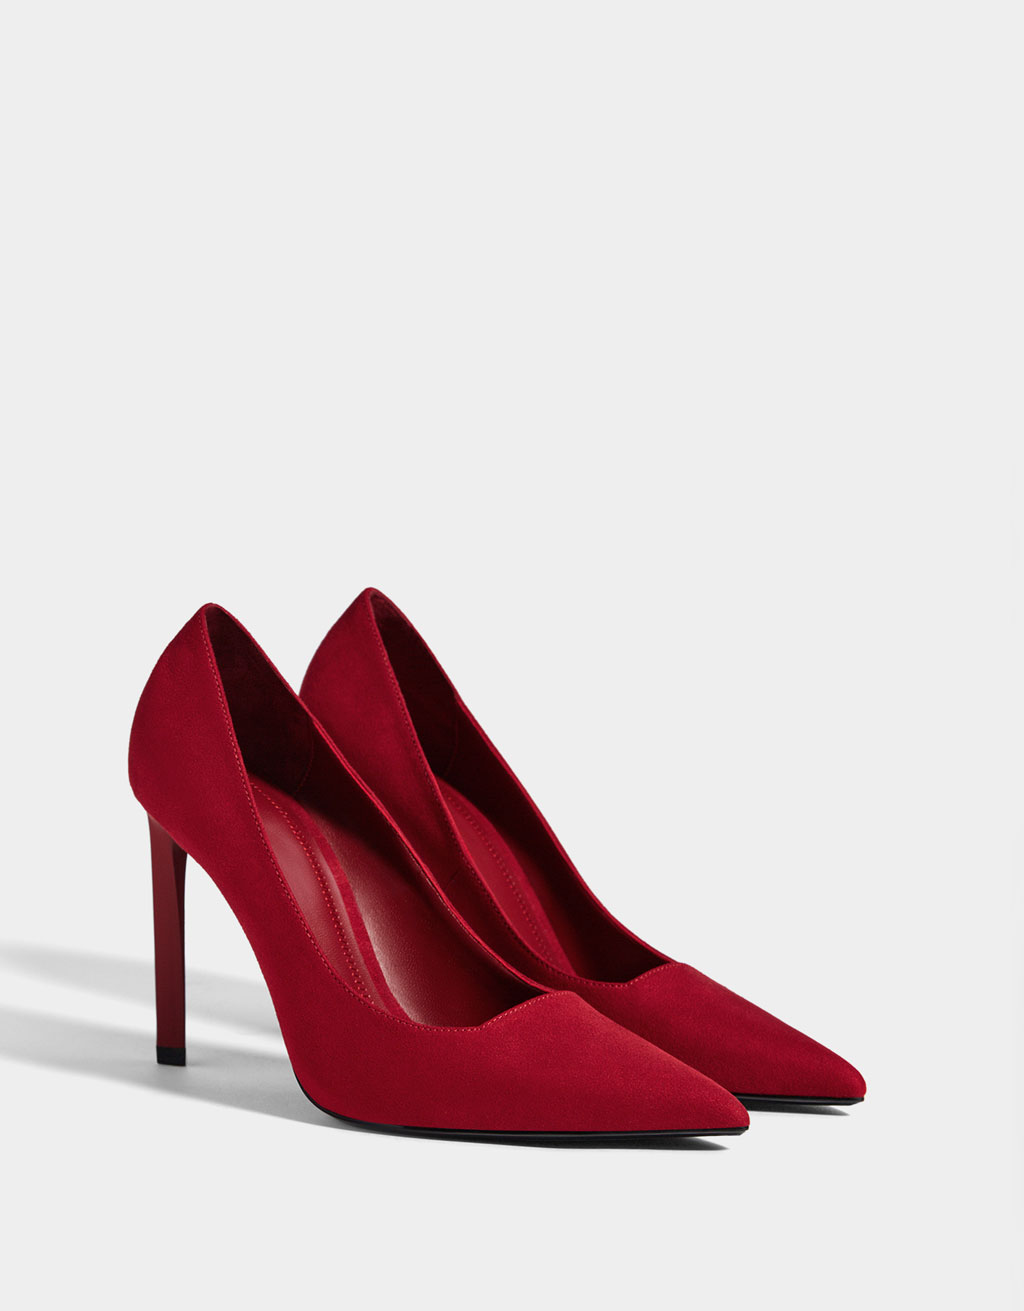 Stiletto heel shoes